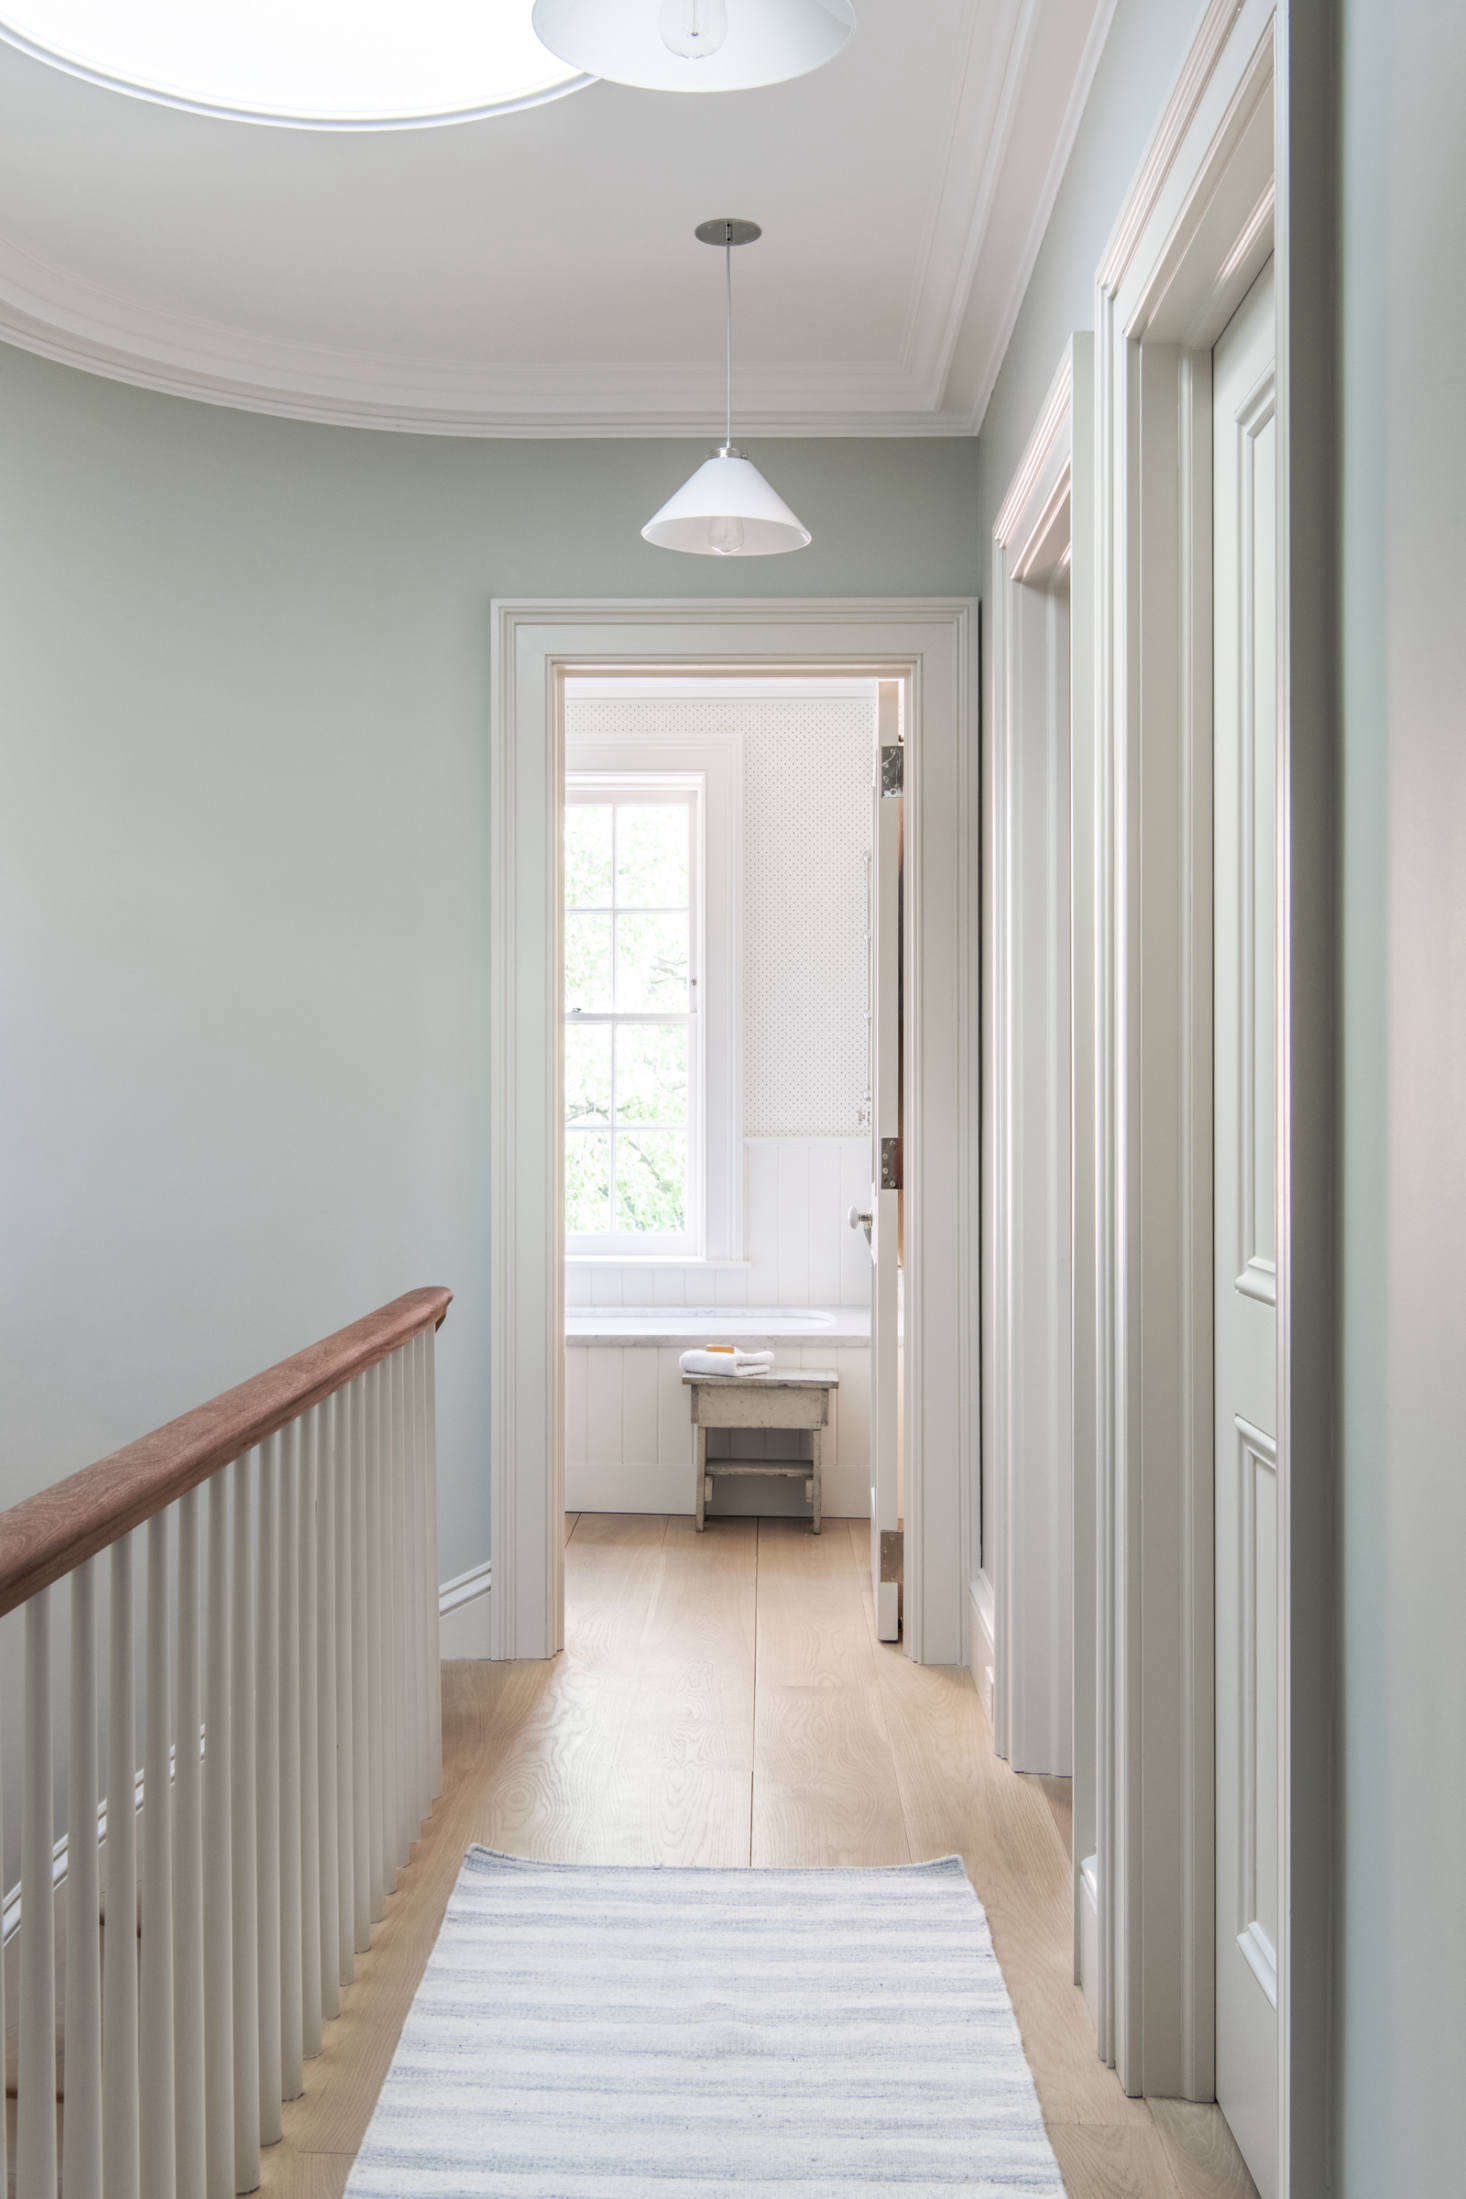 The skylit top floor is the children's quarters. The mahogany handrail is original and the rest is a replica. The walls are painted Cromarty and the trim is Shadow White, both from Farrow & Ball.